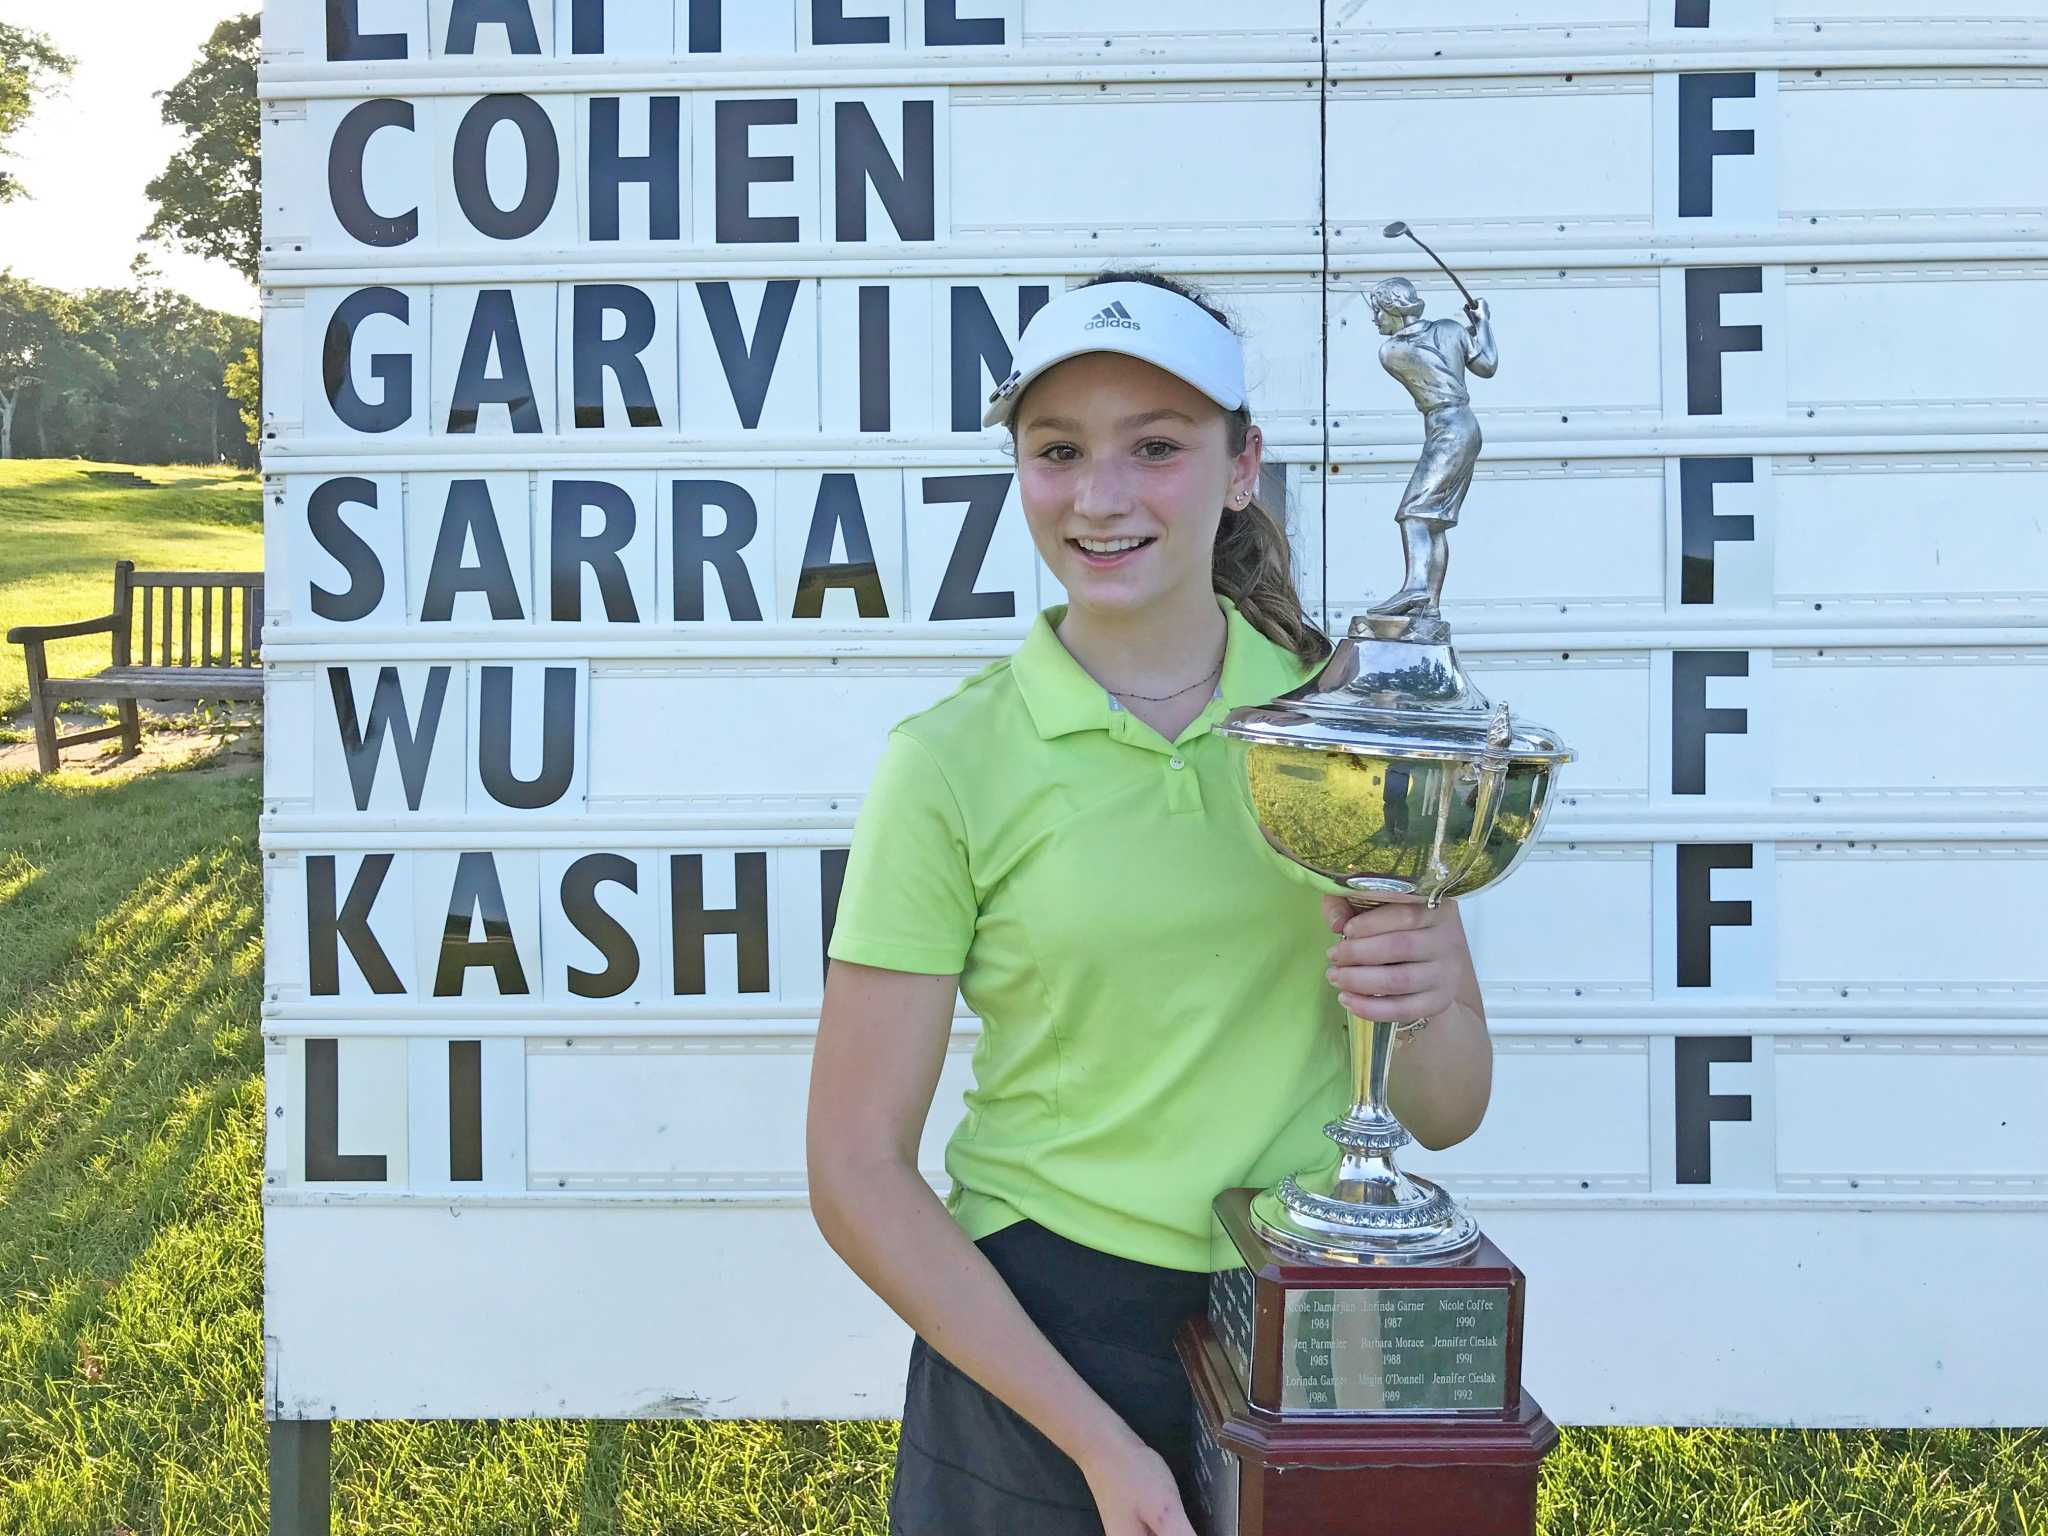 Golf notes: Girls Junior PGA Championship tees off this week in